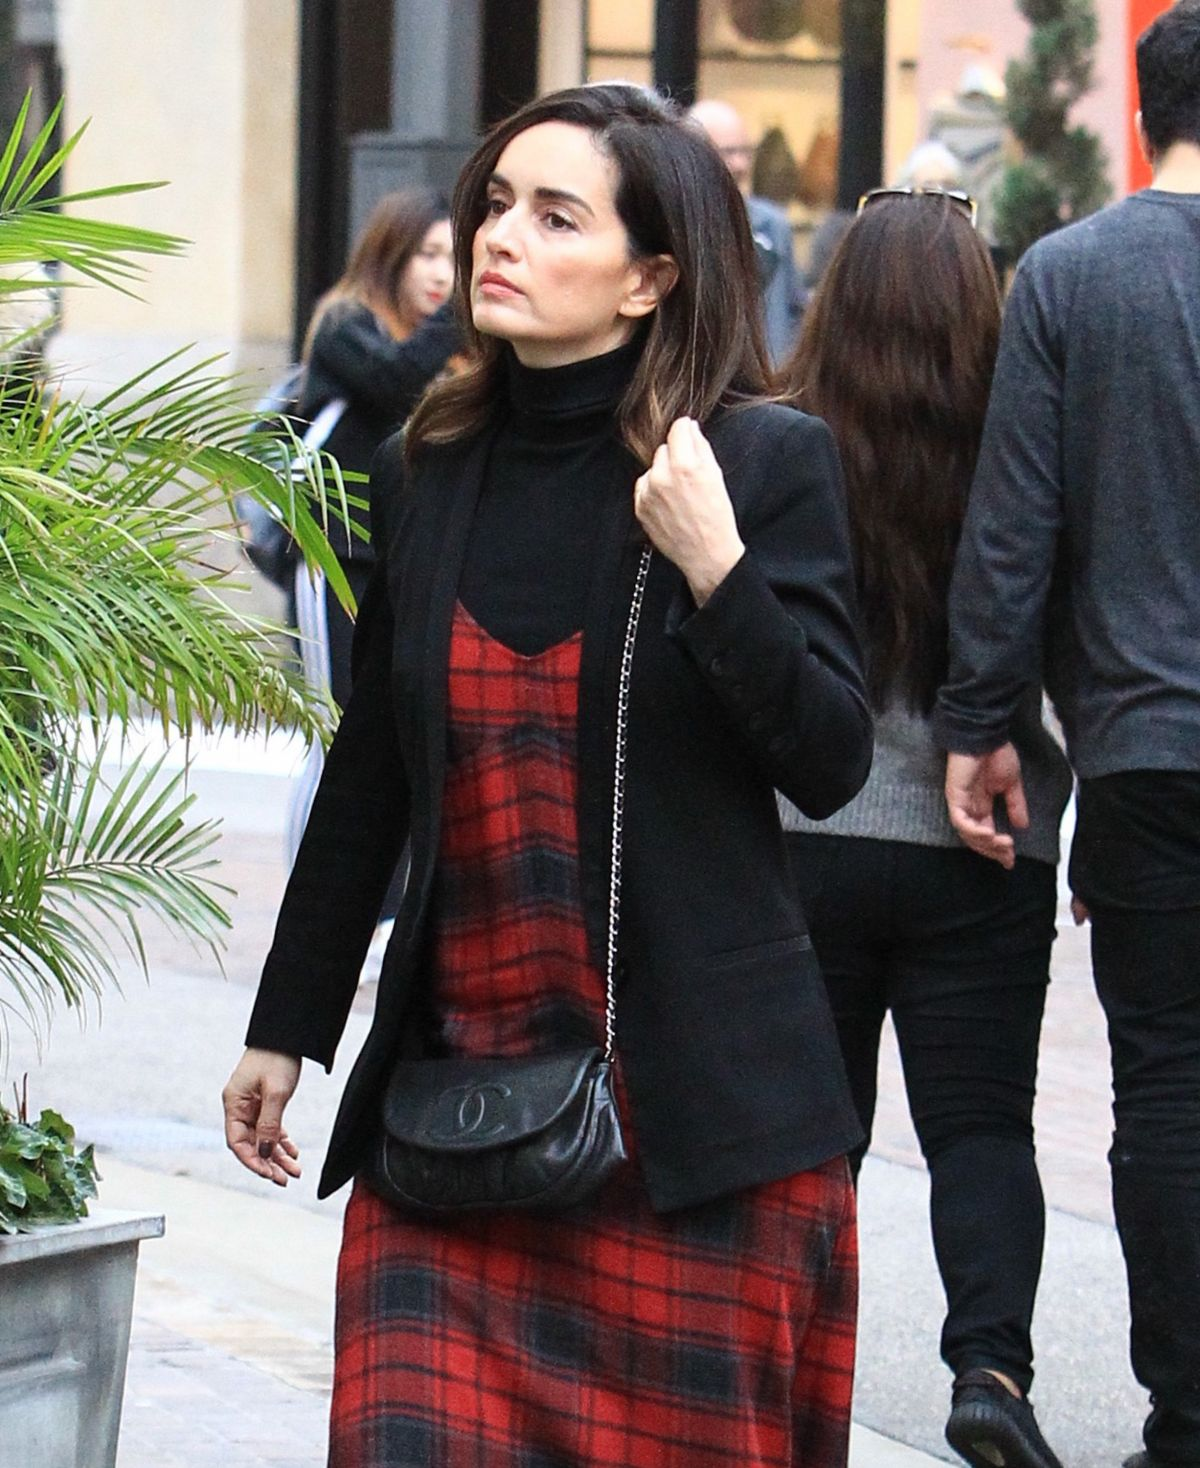 ANA DE LA REGUERA Out for Shopping in Los Angeles 12/12/2016